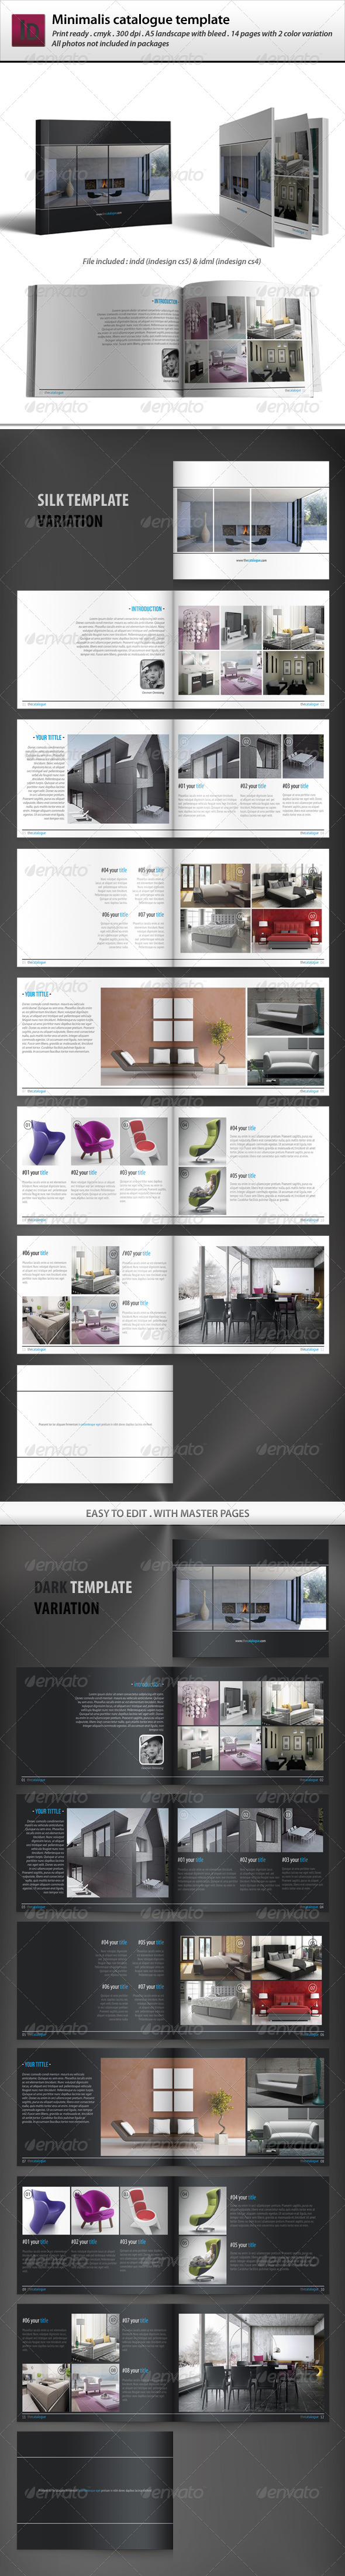 Minimalis Catalogue Template